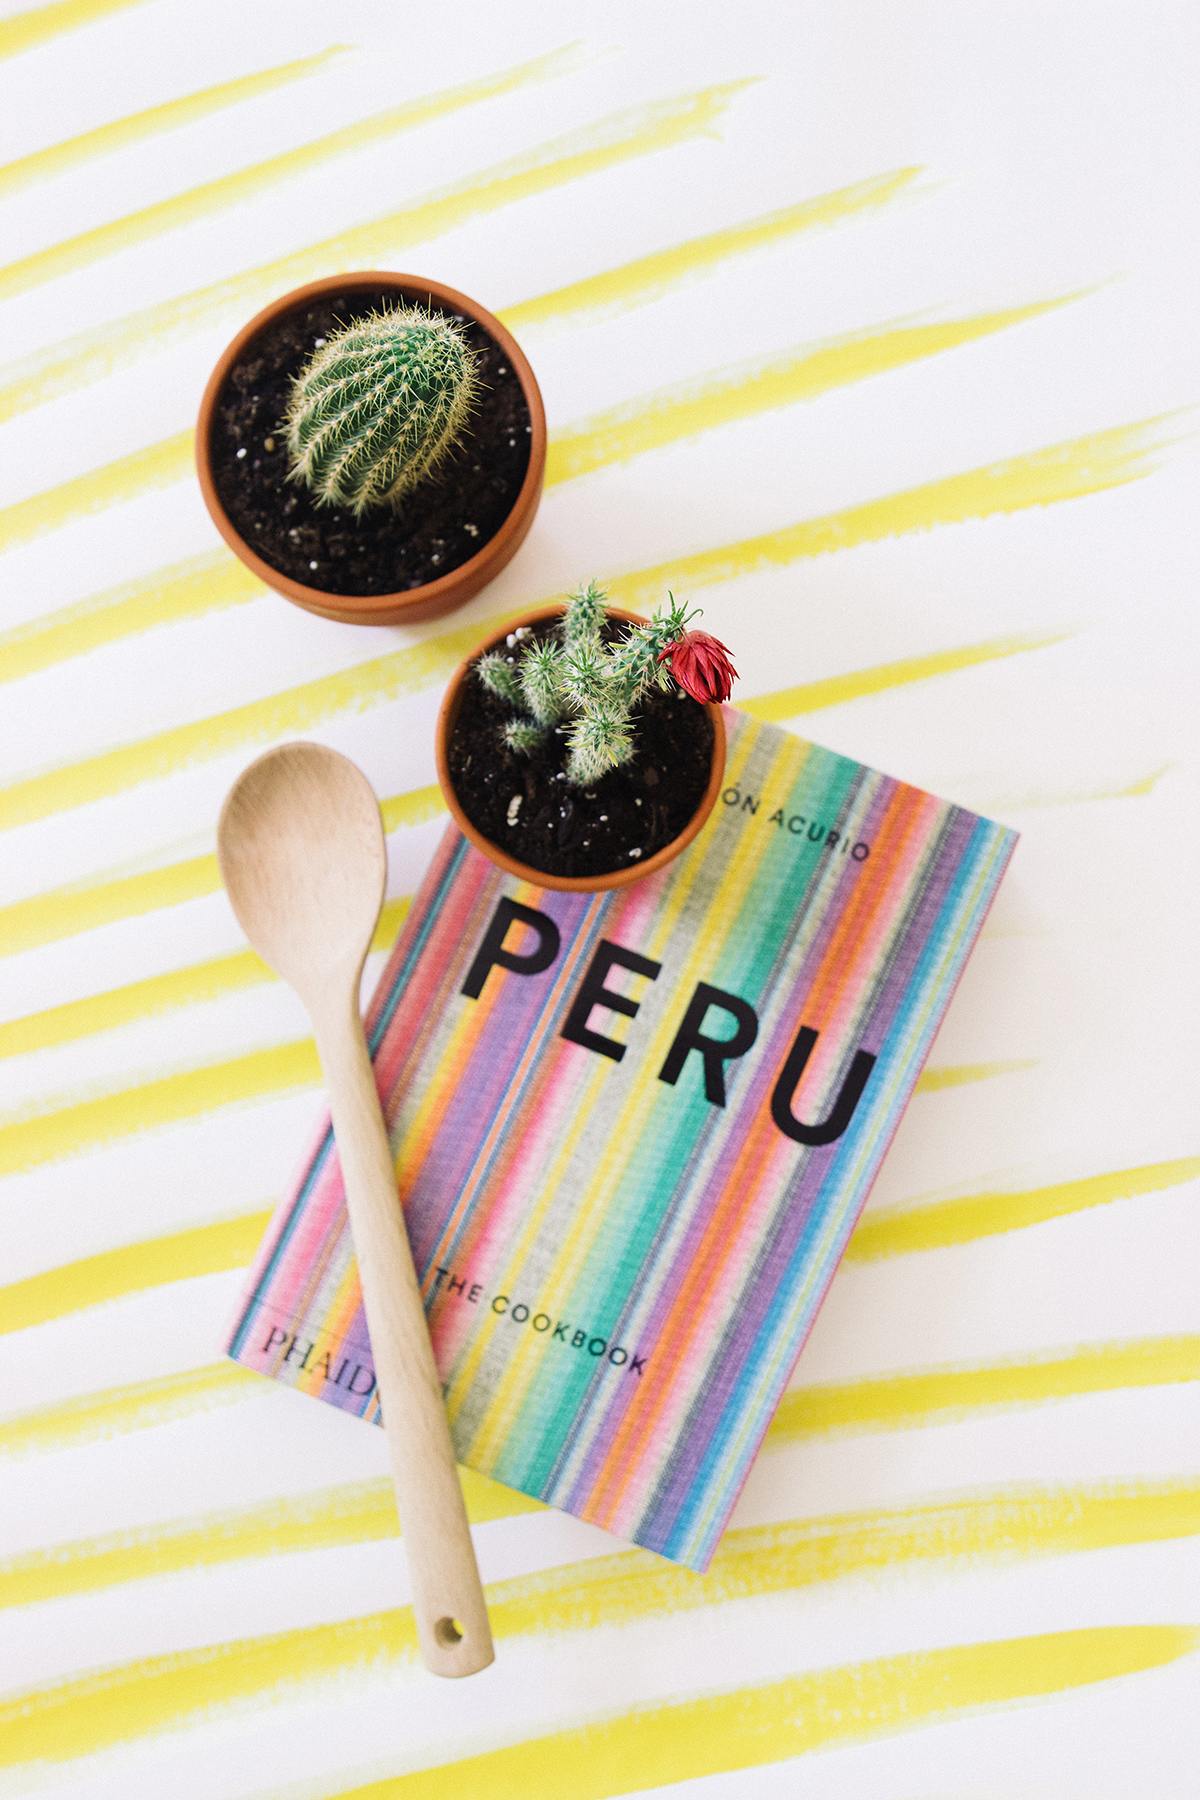 Peru-Cookbook-travelmodus